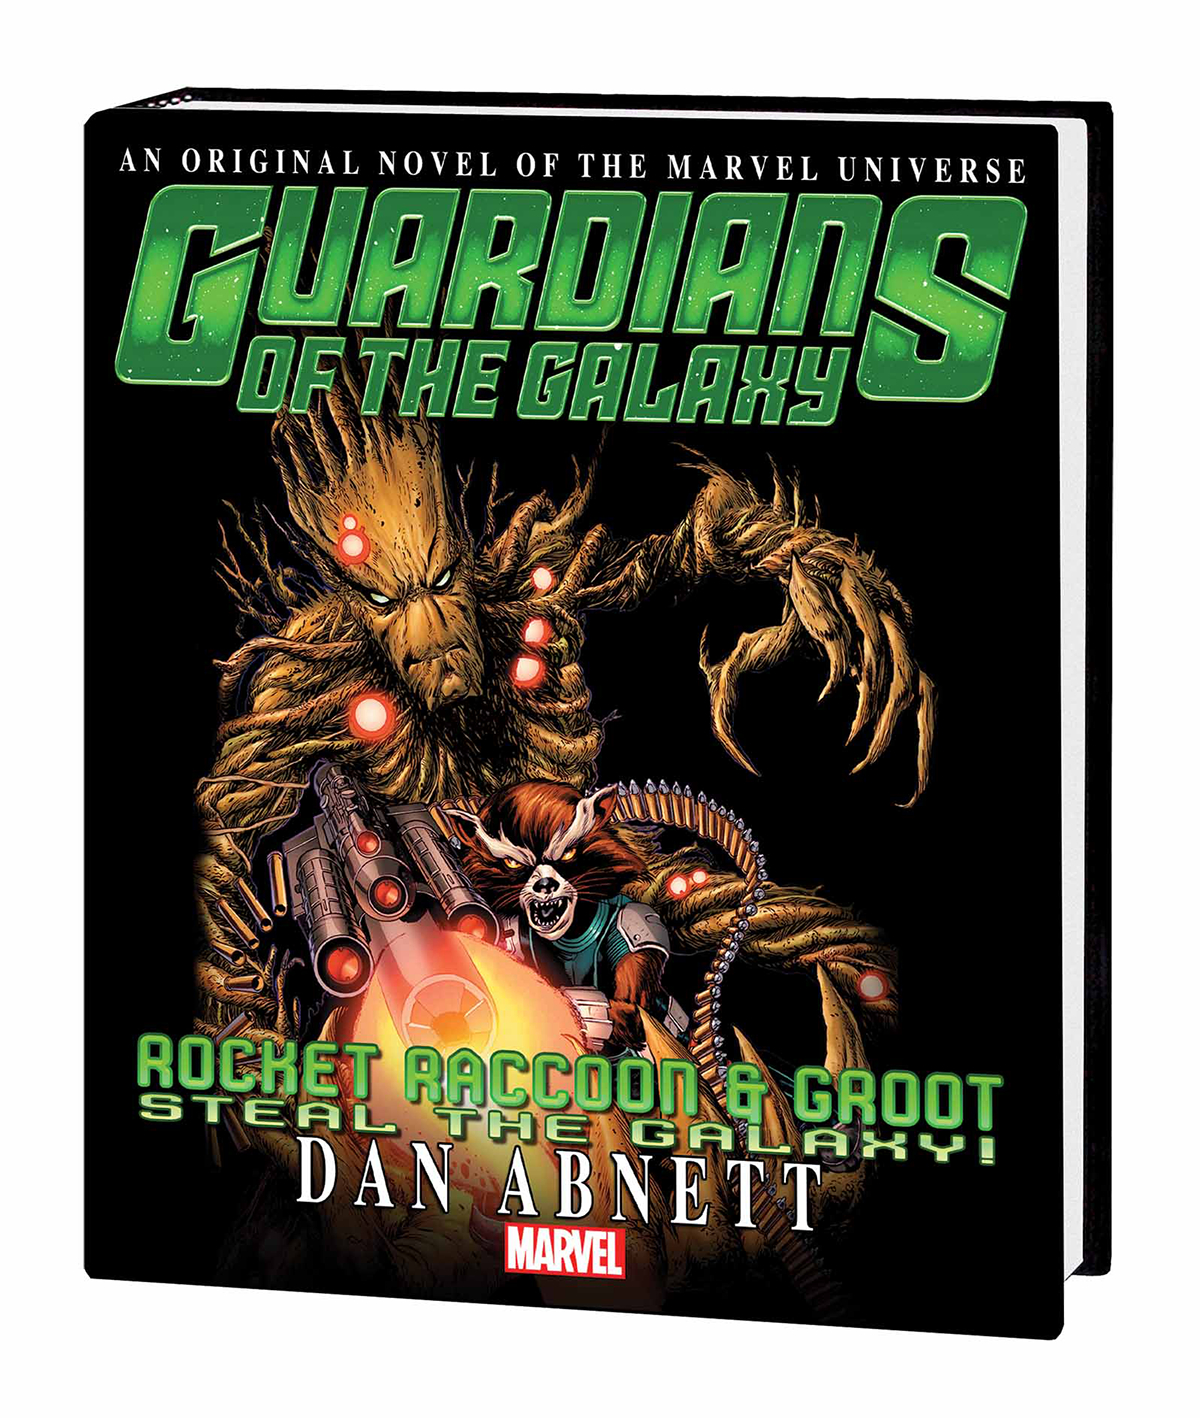 GOTG RR AND GROOT STEAL GALAXY PROSE NOVEL MARKET TP